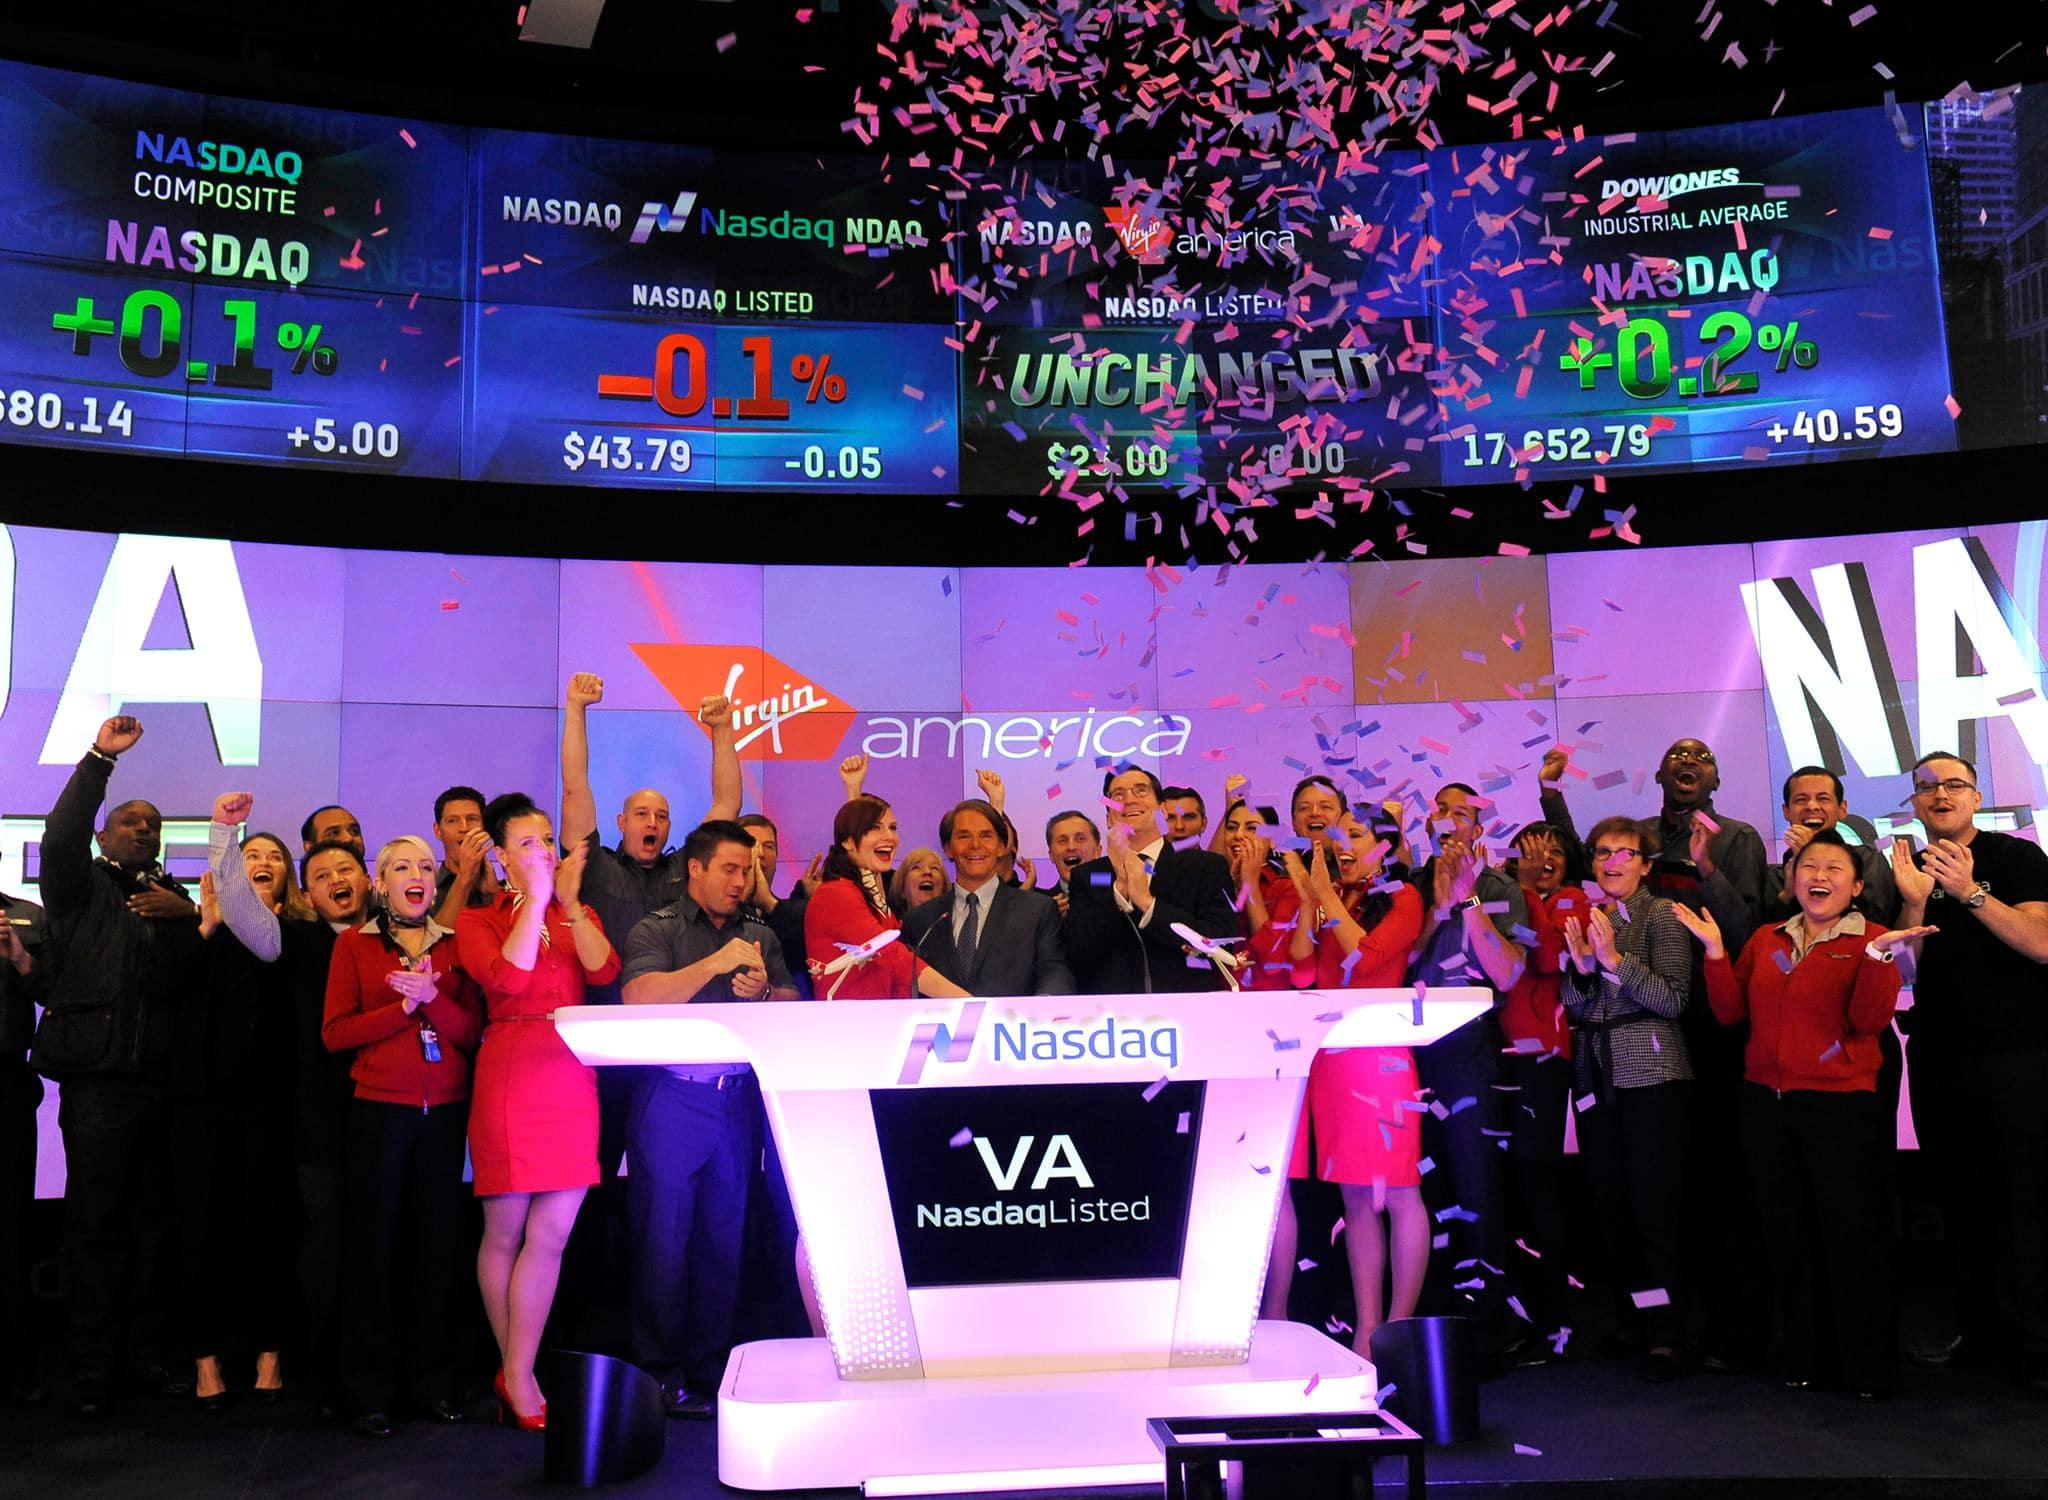 An image of the Virgin America team when listing on the stock exchange